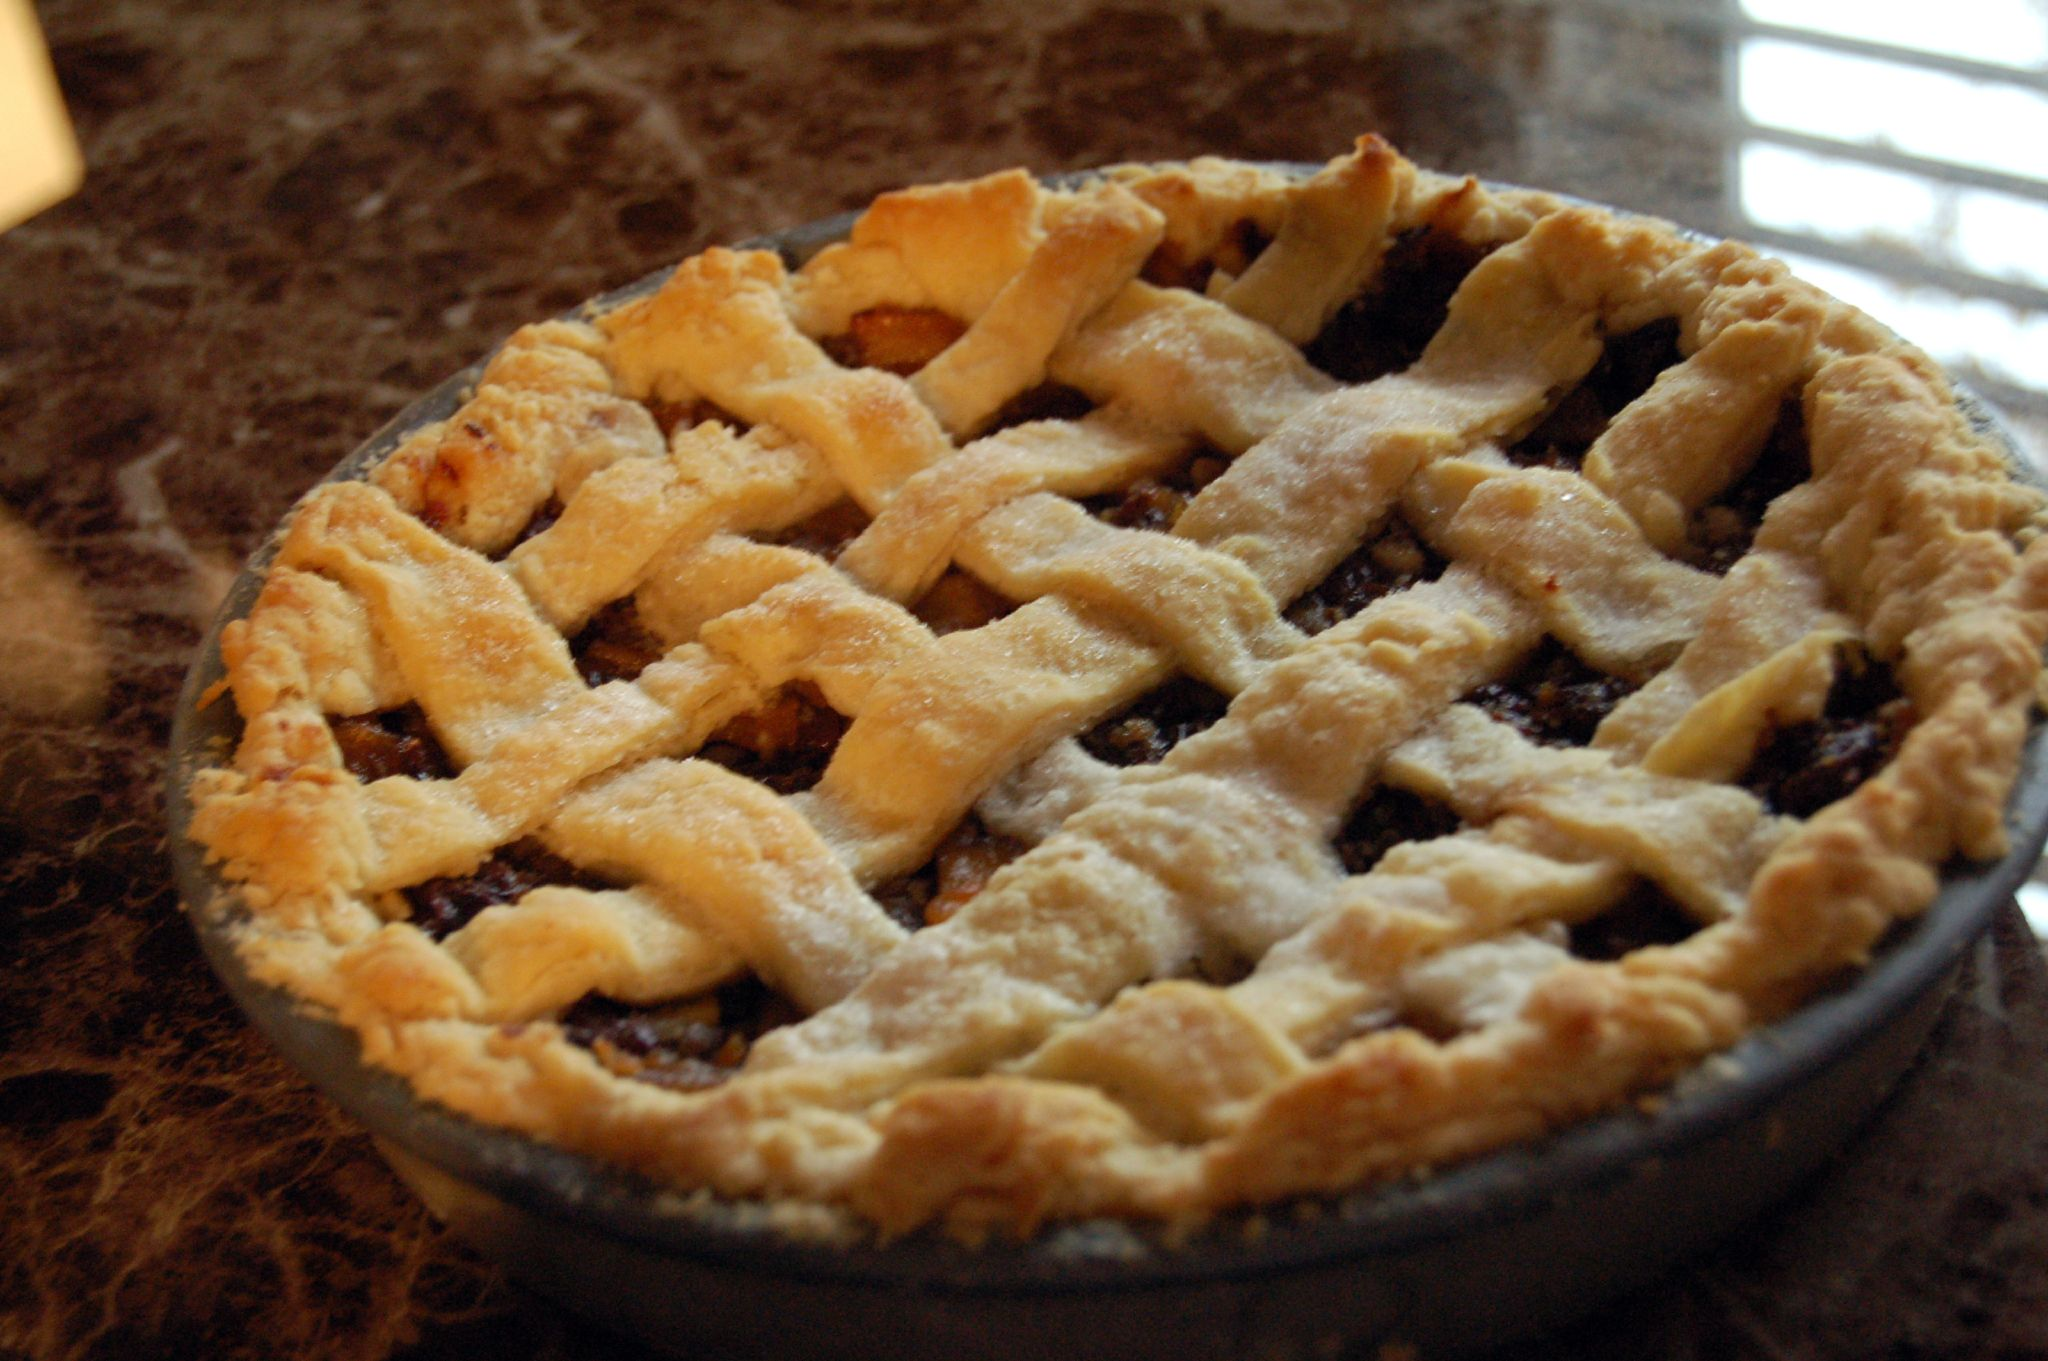 Our homemade (mock) mincemeat pie   Flickr - Photo Sharing!